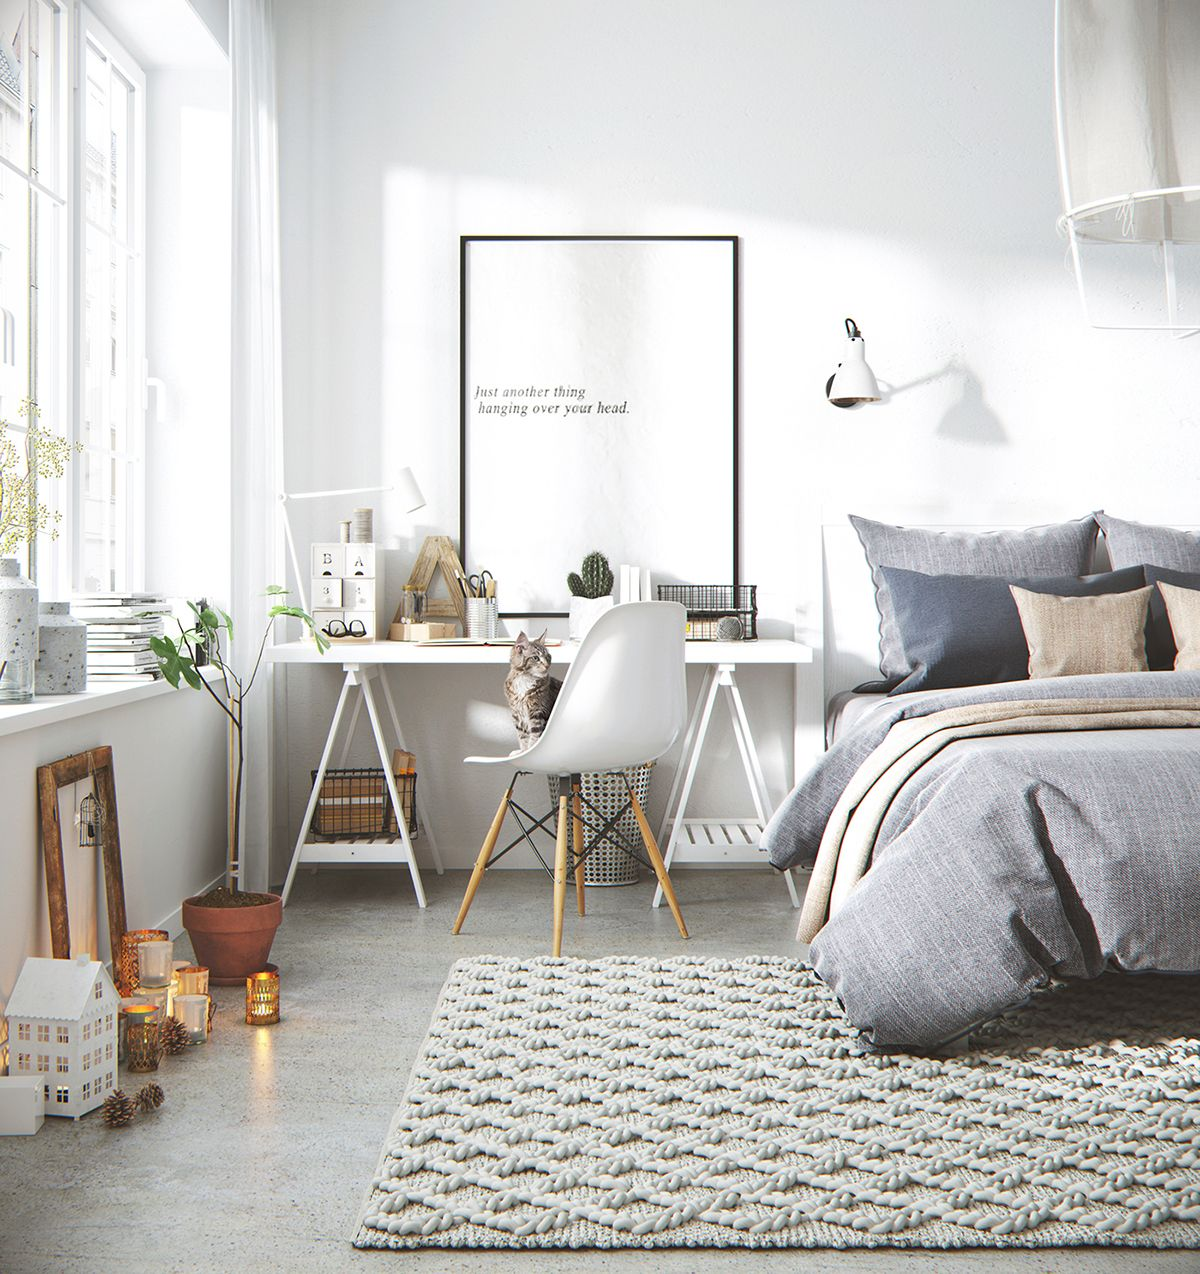 Interior home design bedroom ideas le design scandinave vu de la chine  planete deco a homes world